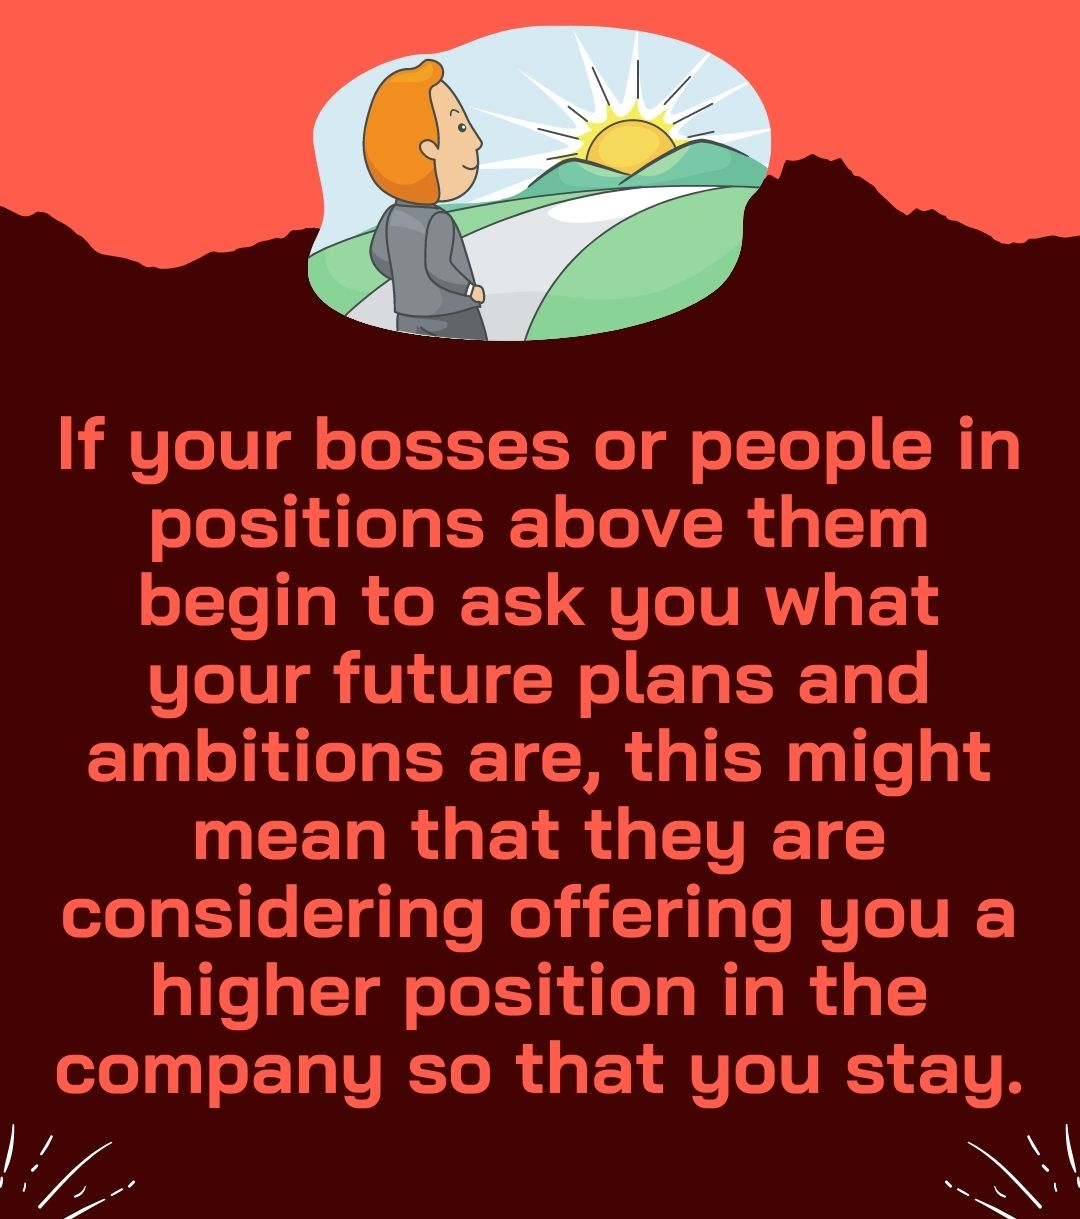 If your bosses or people in positions above them begin